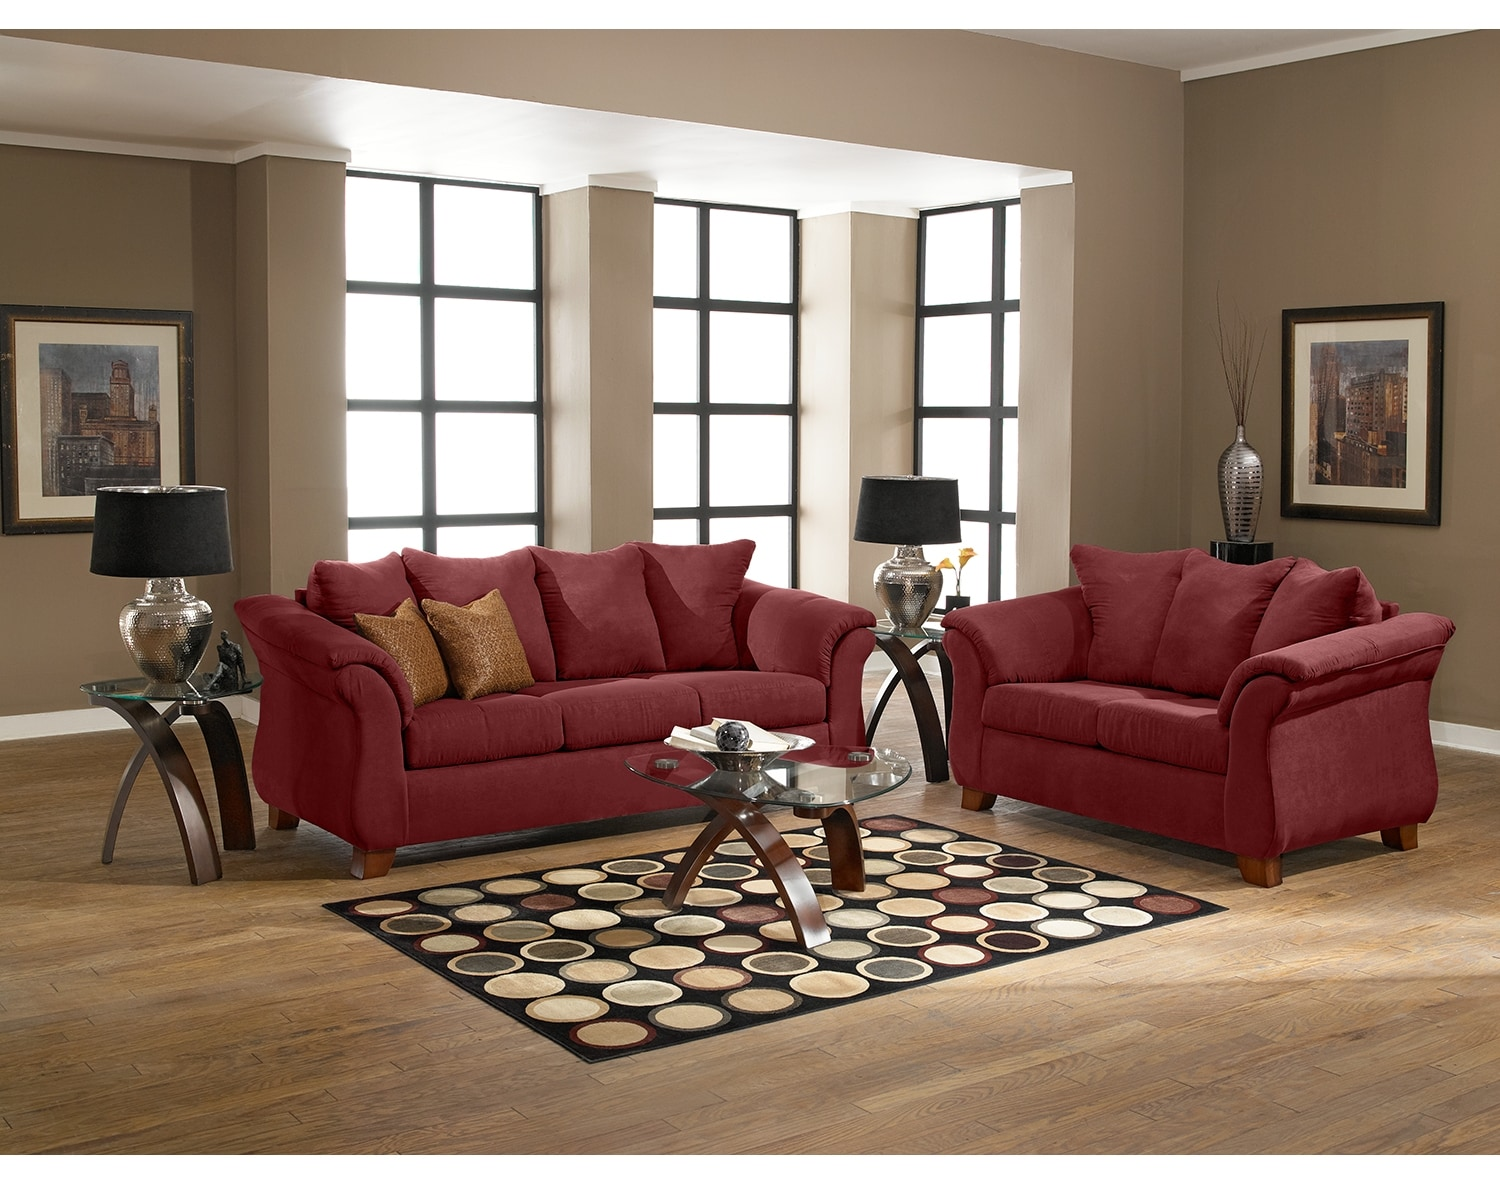 The Adrian Collection Red American Signature Furniture